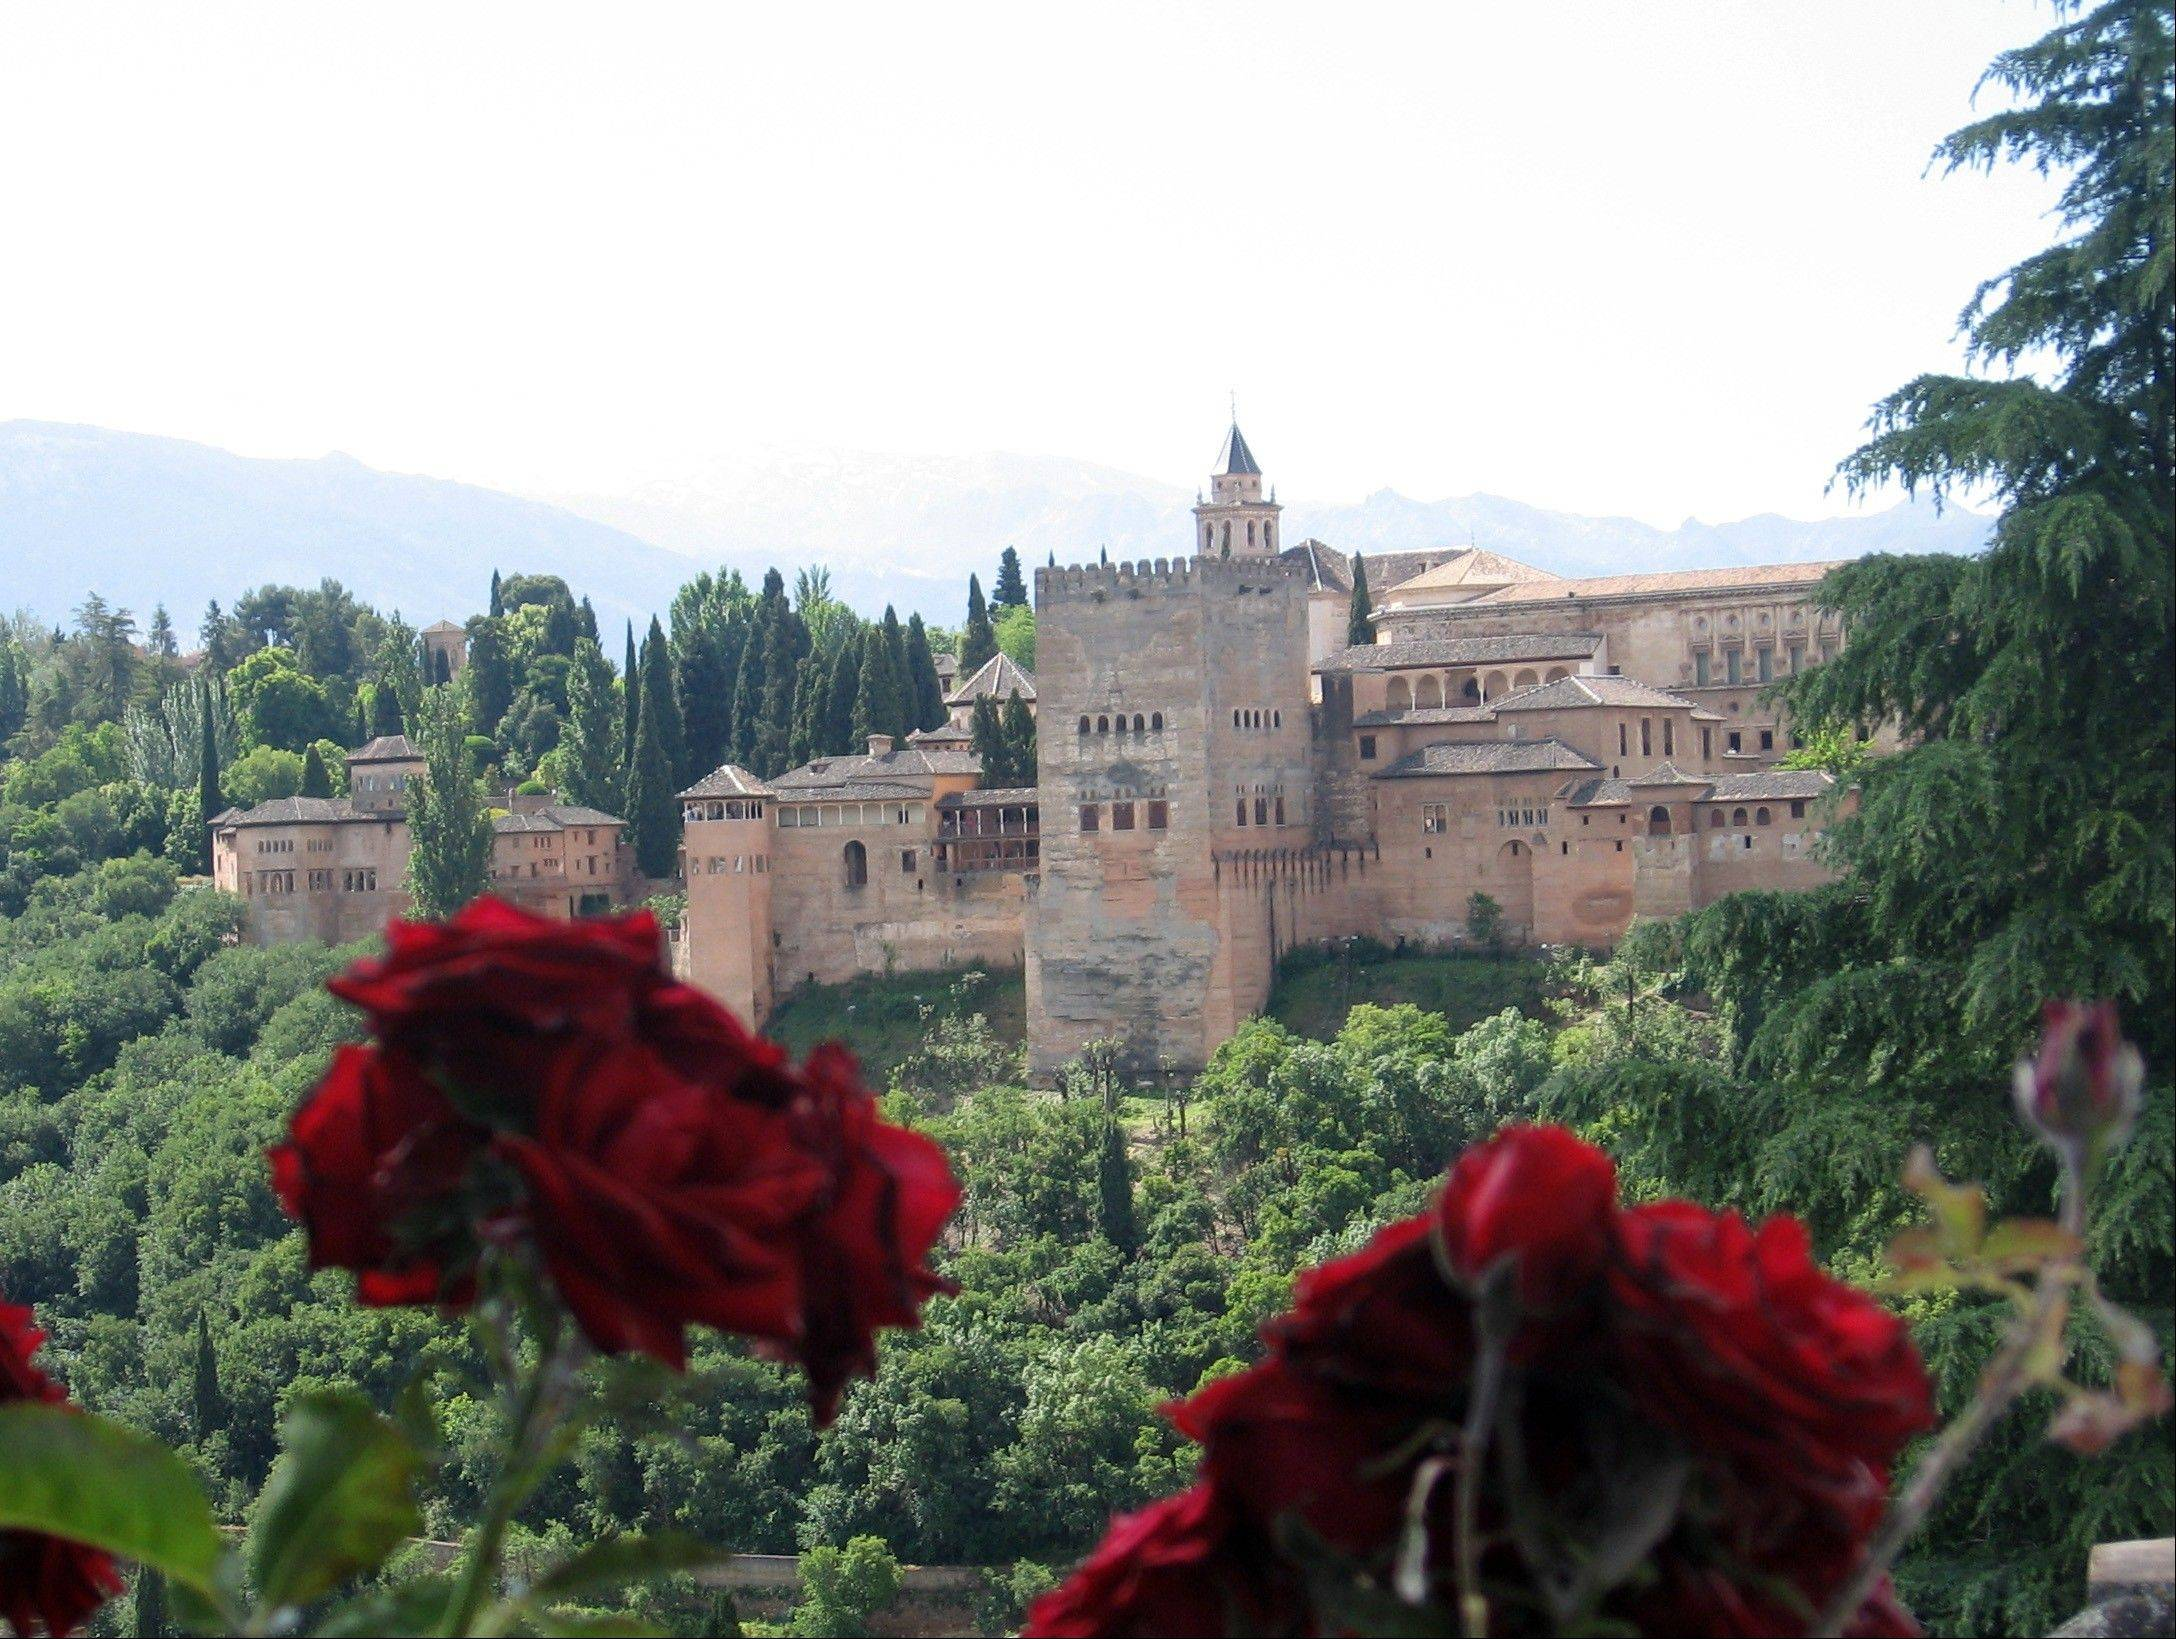 Roses in the garden of a mosque in the Albaicin neighborhood in Granada, in Andalusia, Spain, framing the Alhambra, the city's medieval Islamic palace complex. Andalusia offers a fusion of Christian and Islamic cultures, found in architectural masterpieces and in everyday life.